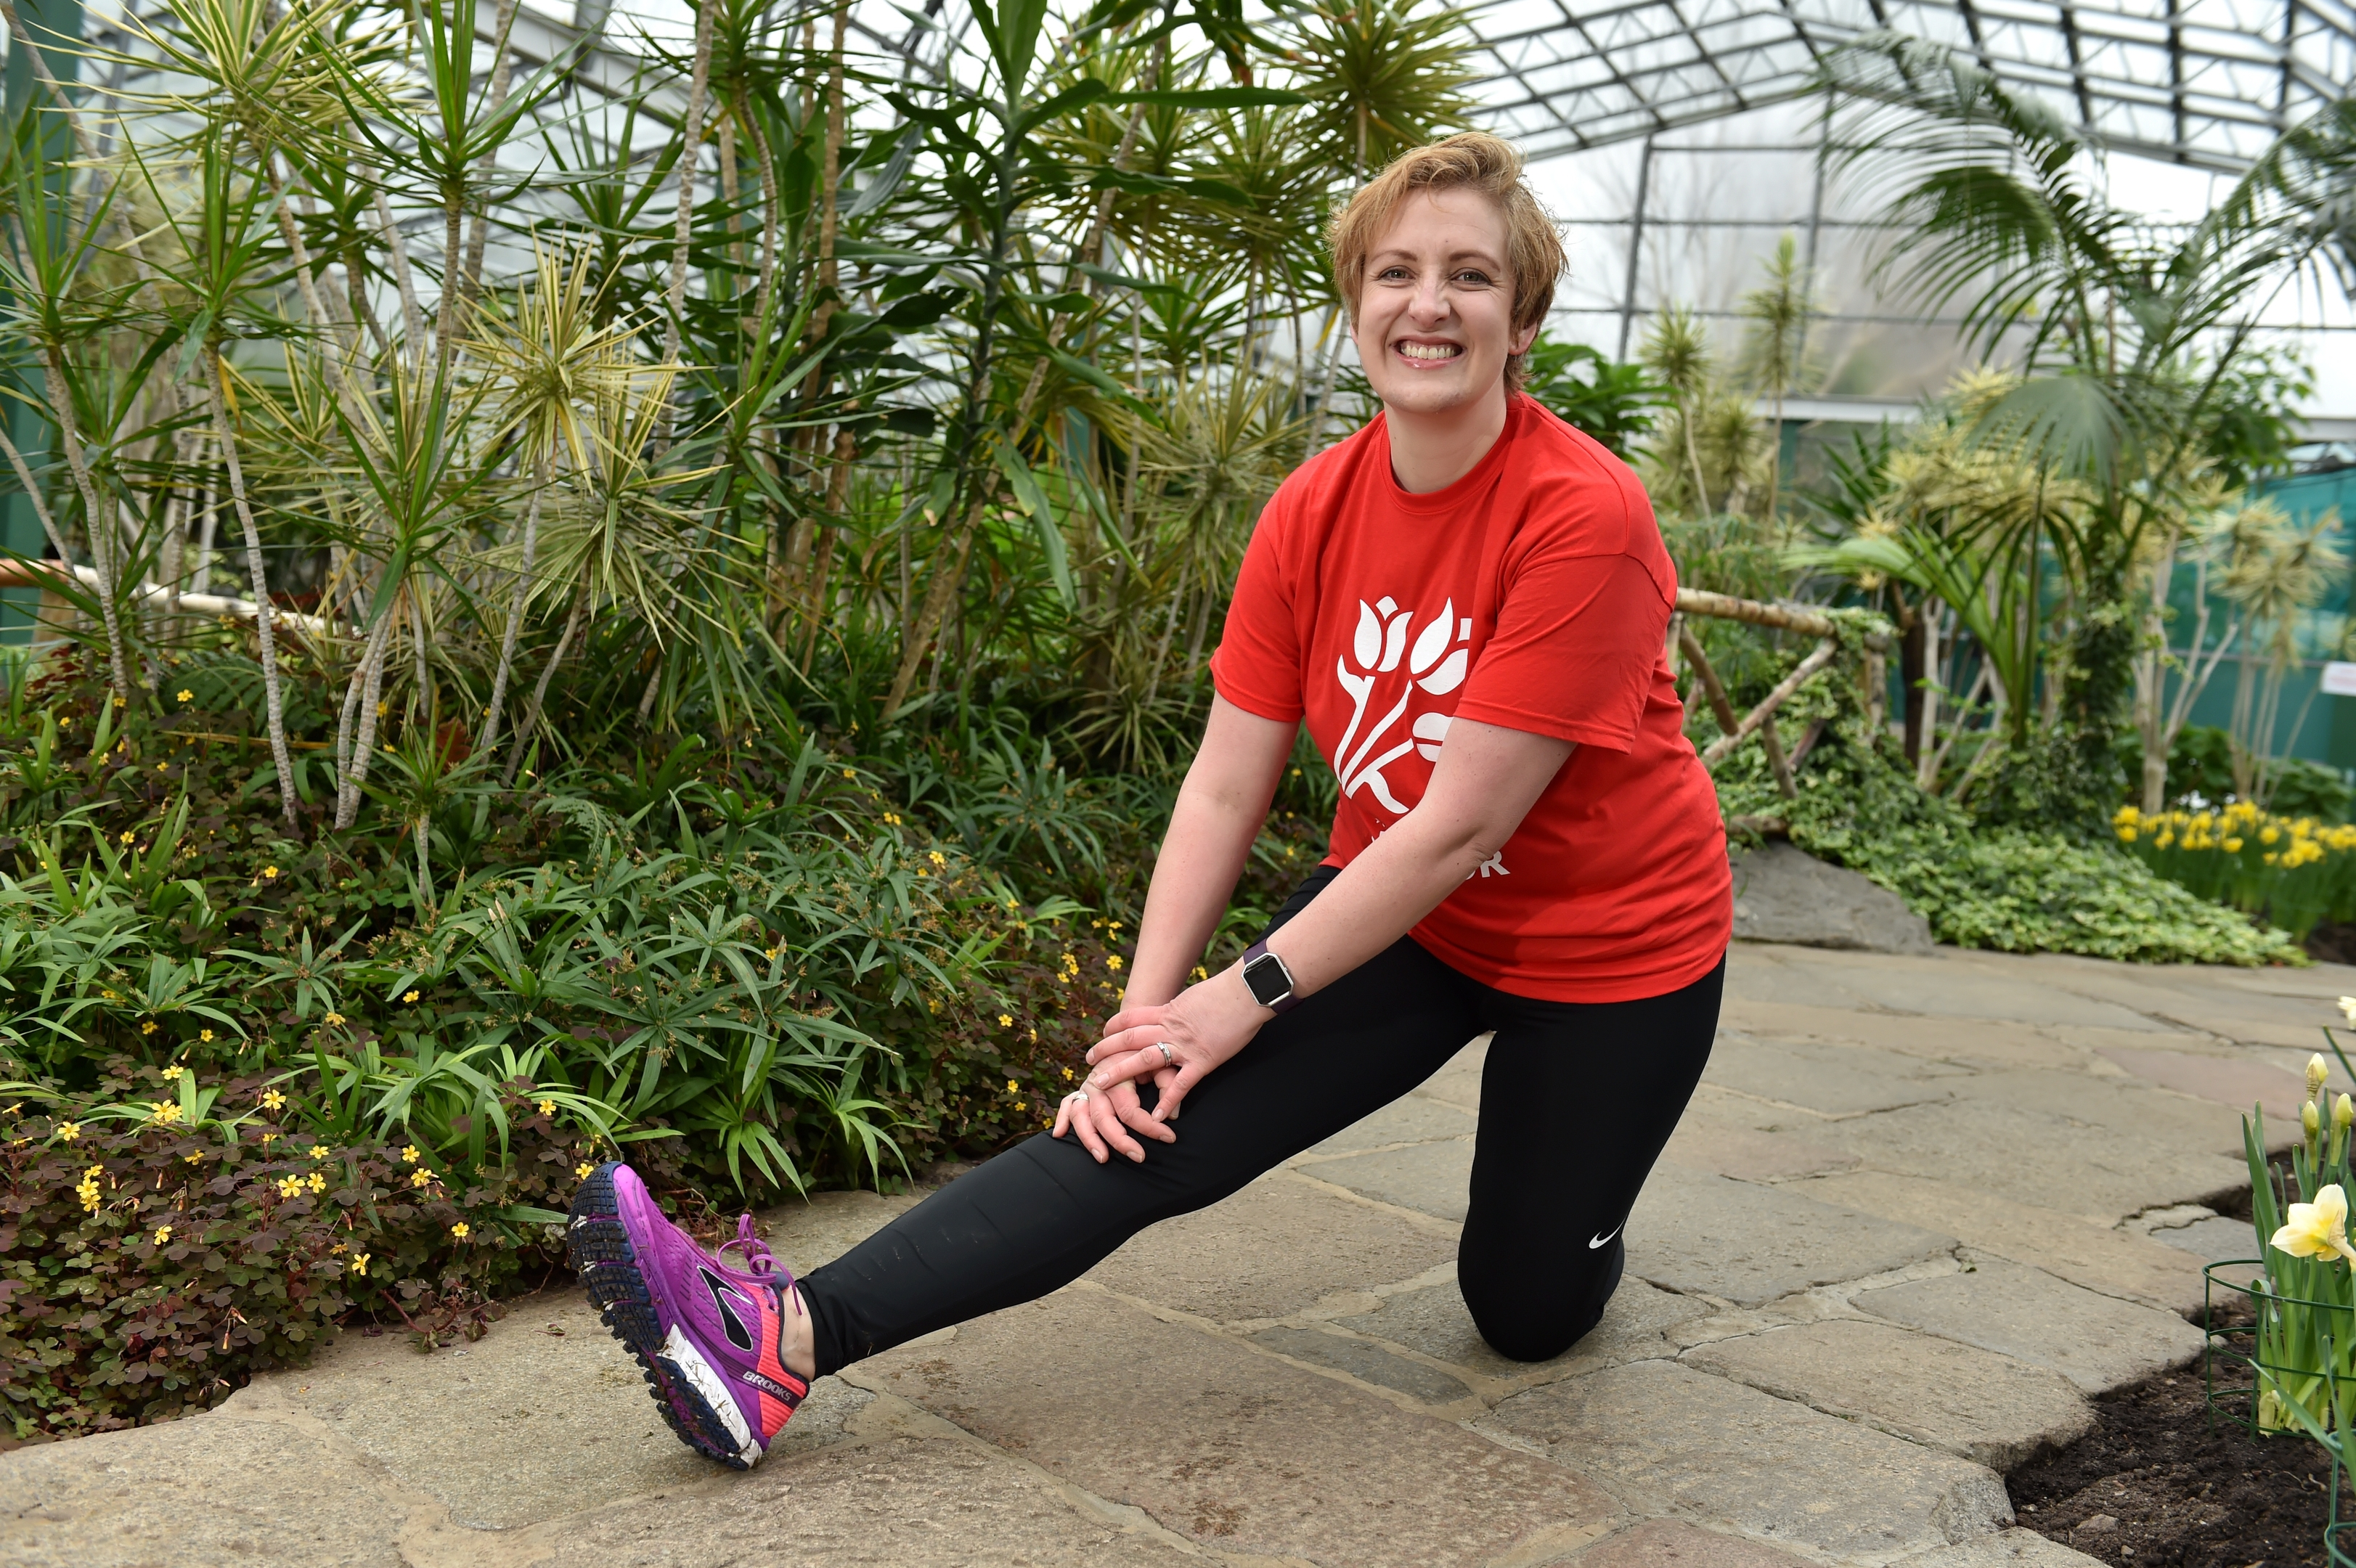 Previous Friends of Anchor Courage on the Catwalk model, Kerry Rae, swaps her catwalk heels for trainers to take on the Run Balmoral 5k in aid of a charity close to her heart with six of her closest friends on her 40th birthday weekend. Picture by Kenny Elrick.